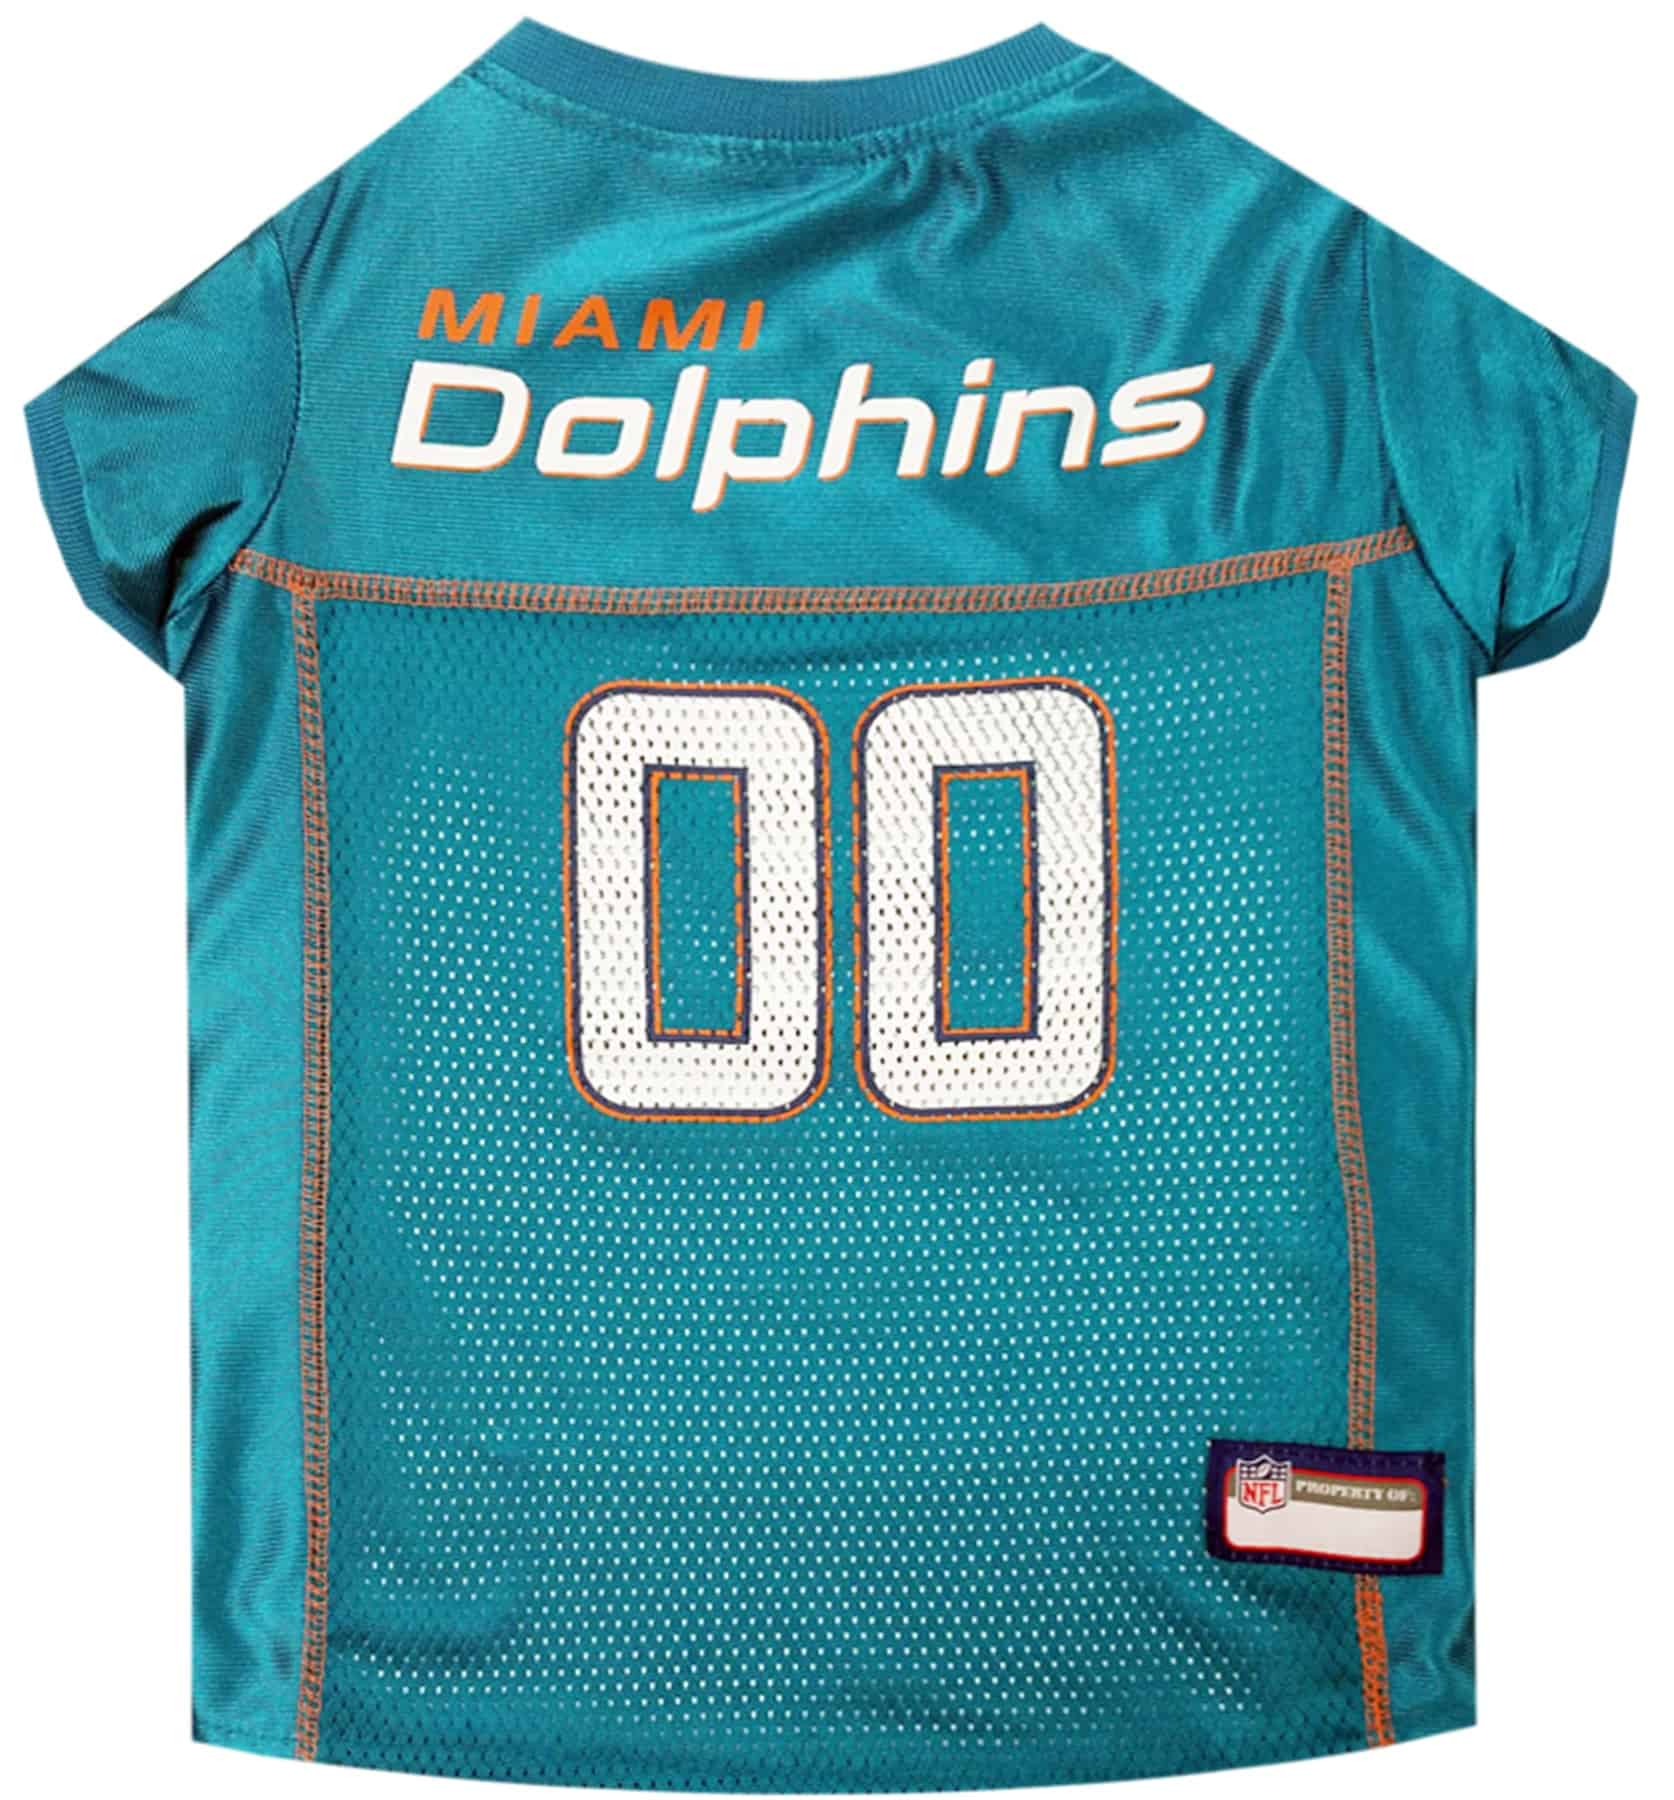 Miami Dolphins Pet Football Jersey